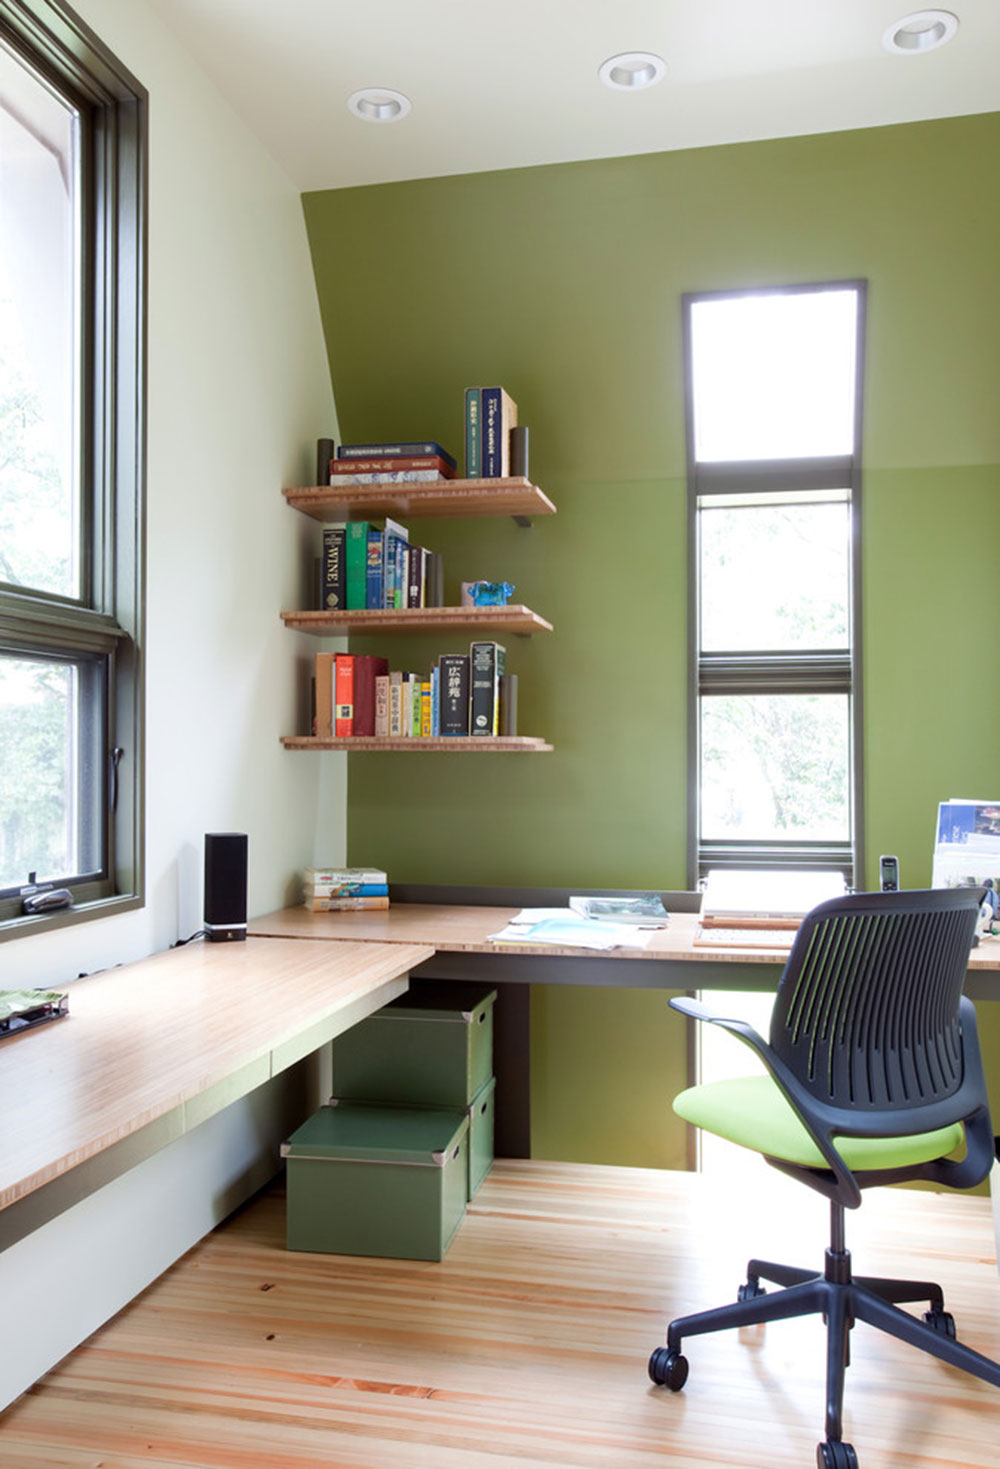 Decorating Your Study Room With Style11 Decorating Your Study Room With